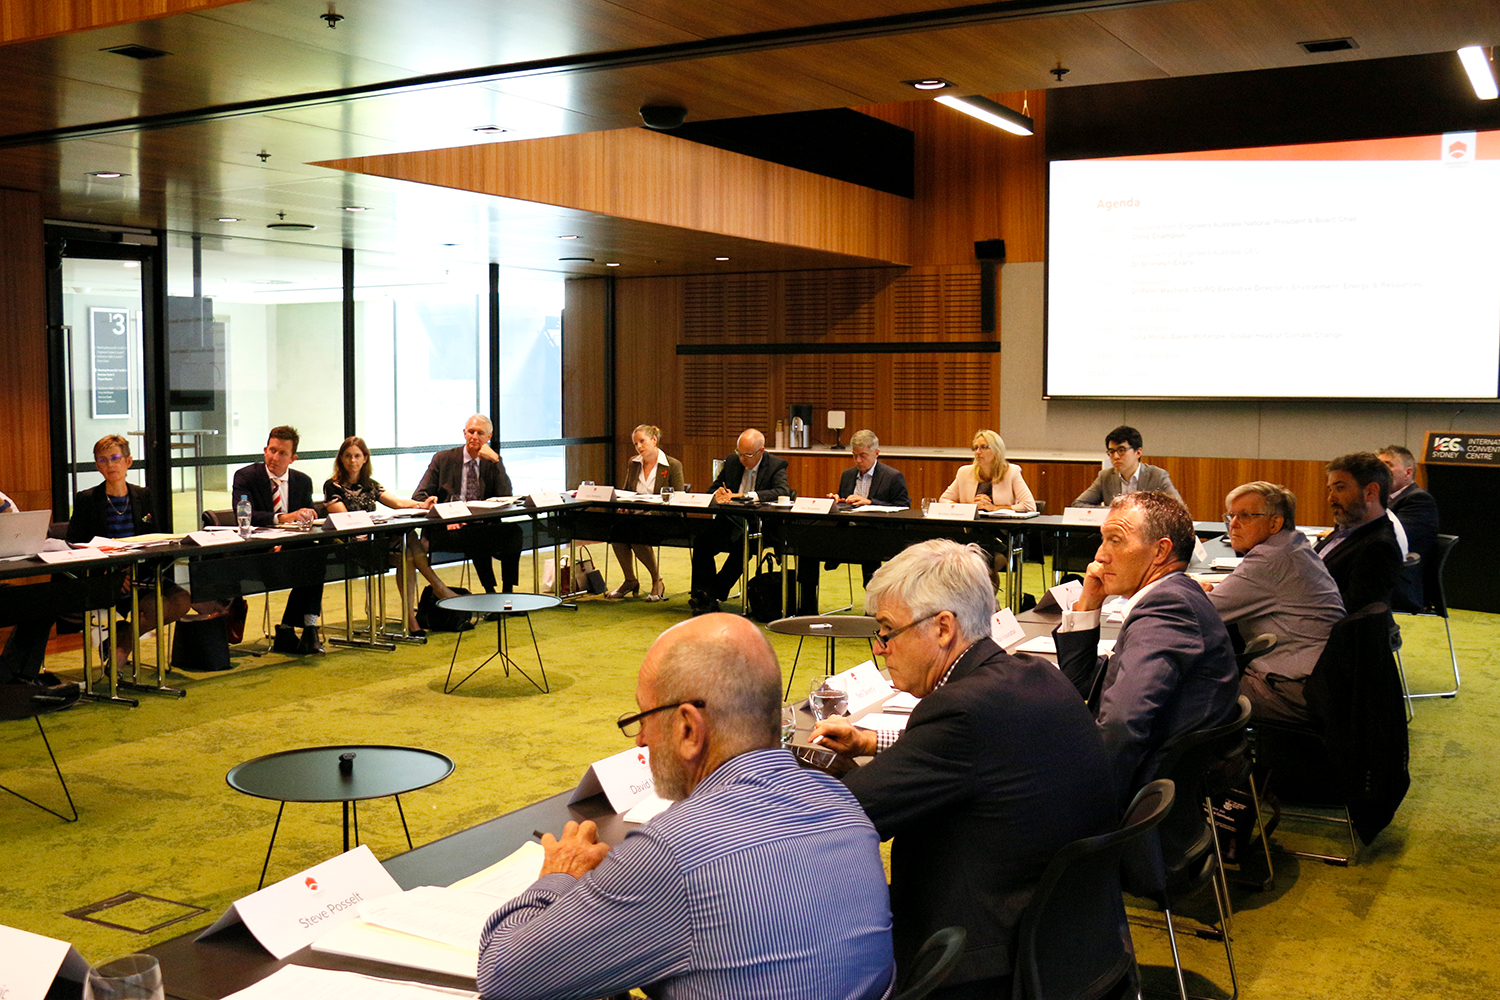 The Engineering Responses to Climate Change Roundtable brought together 26 participants representing industry groups and engineering organisations.